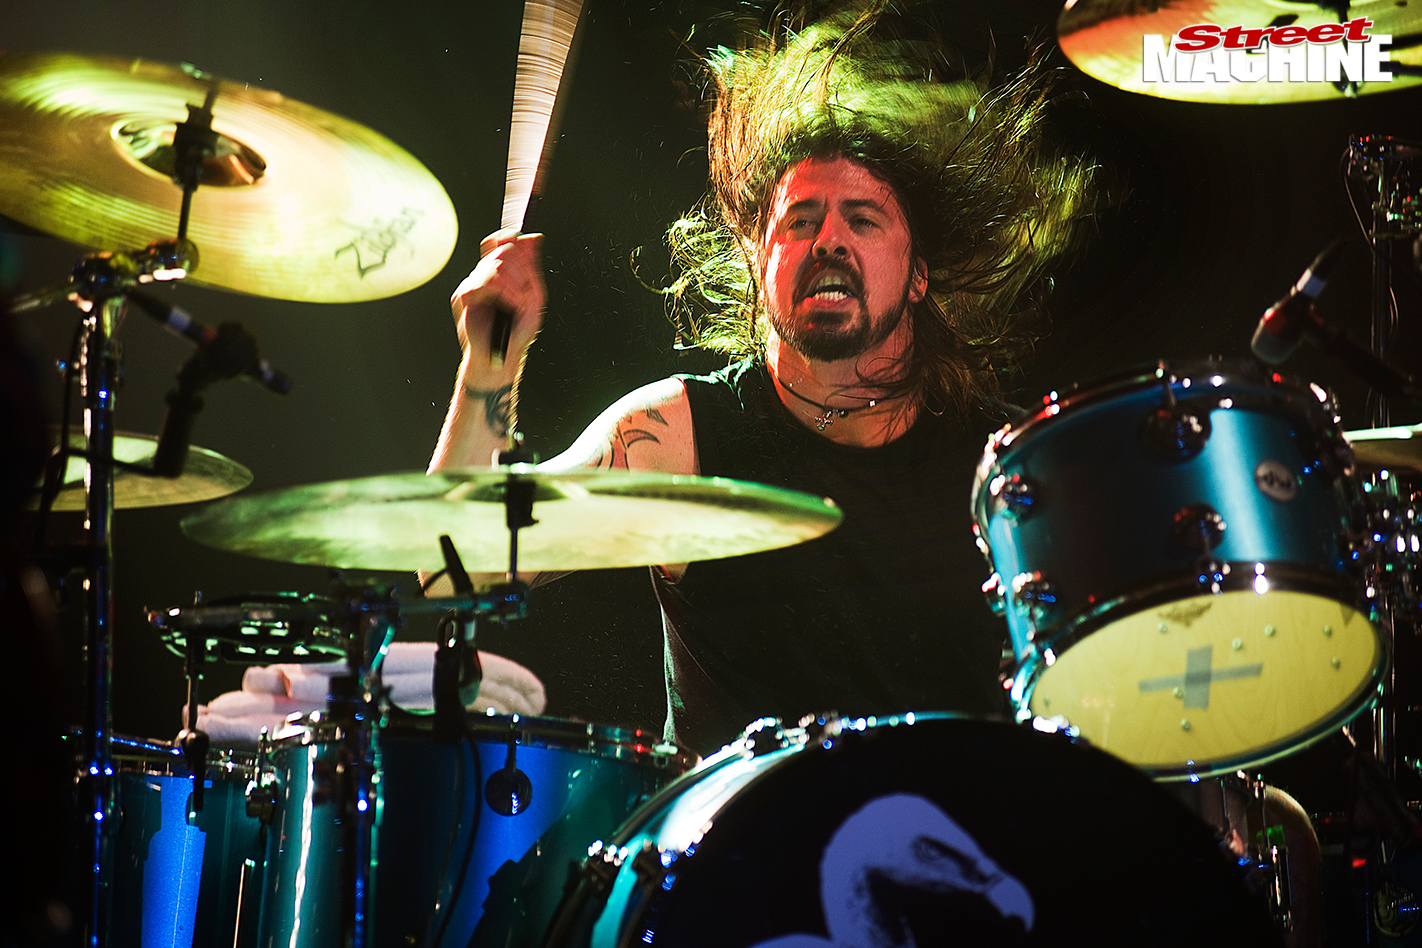 Dave -grohl -drums